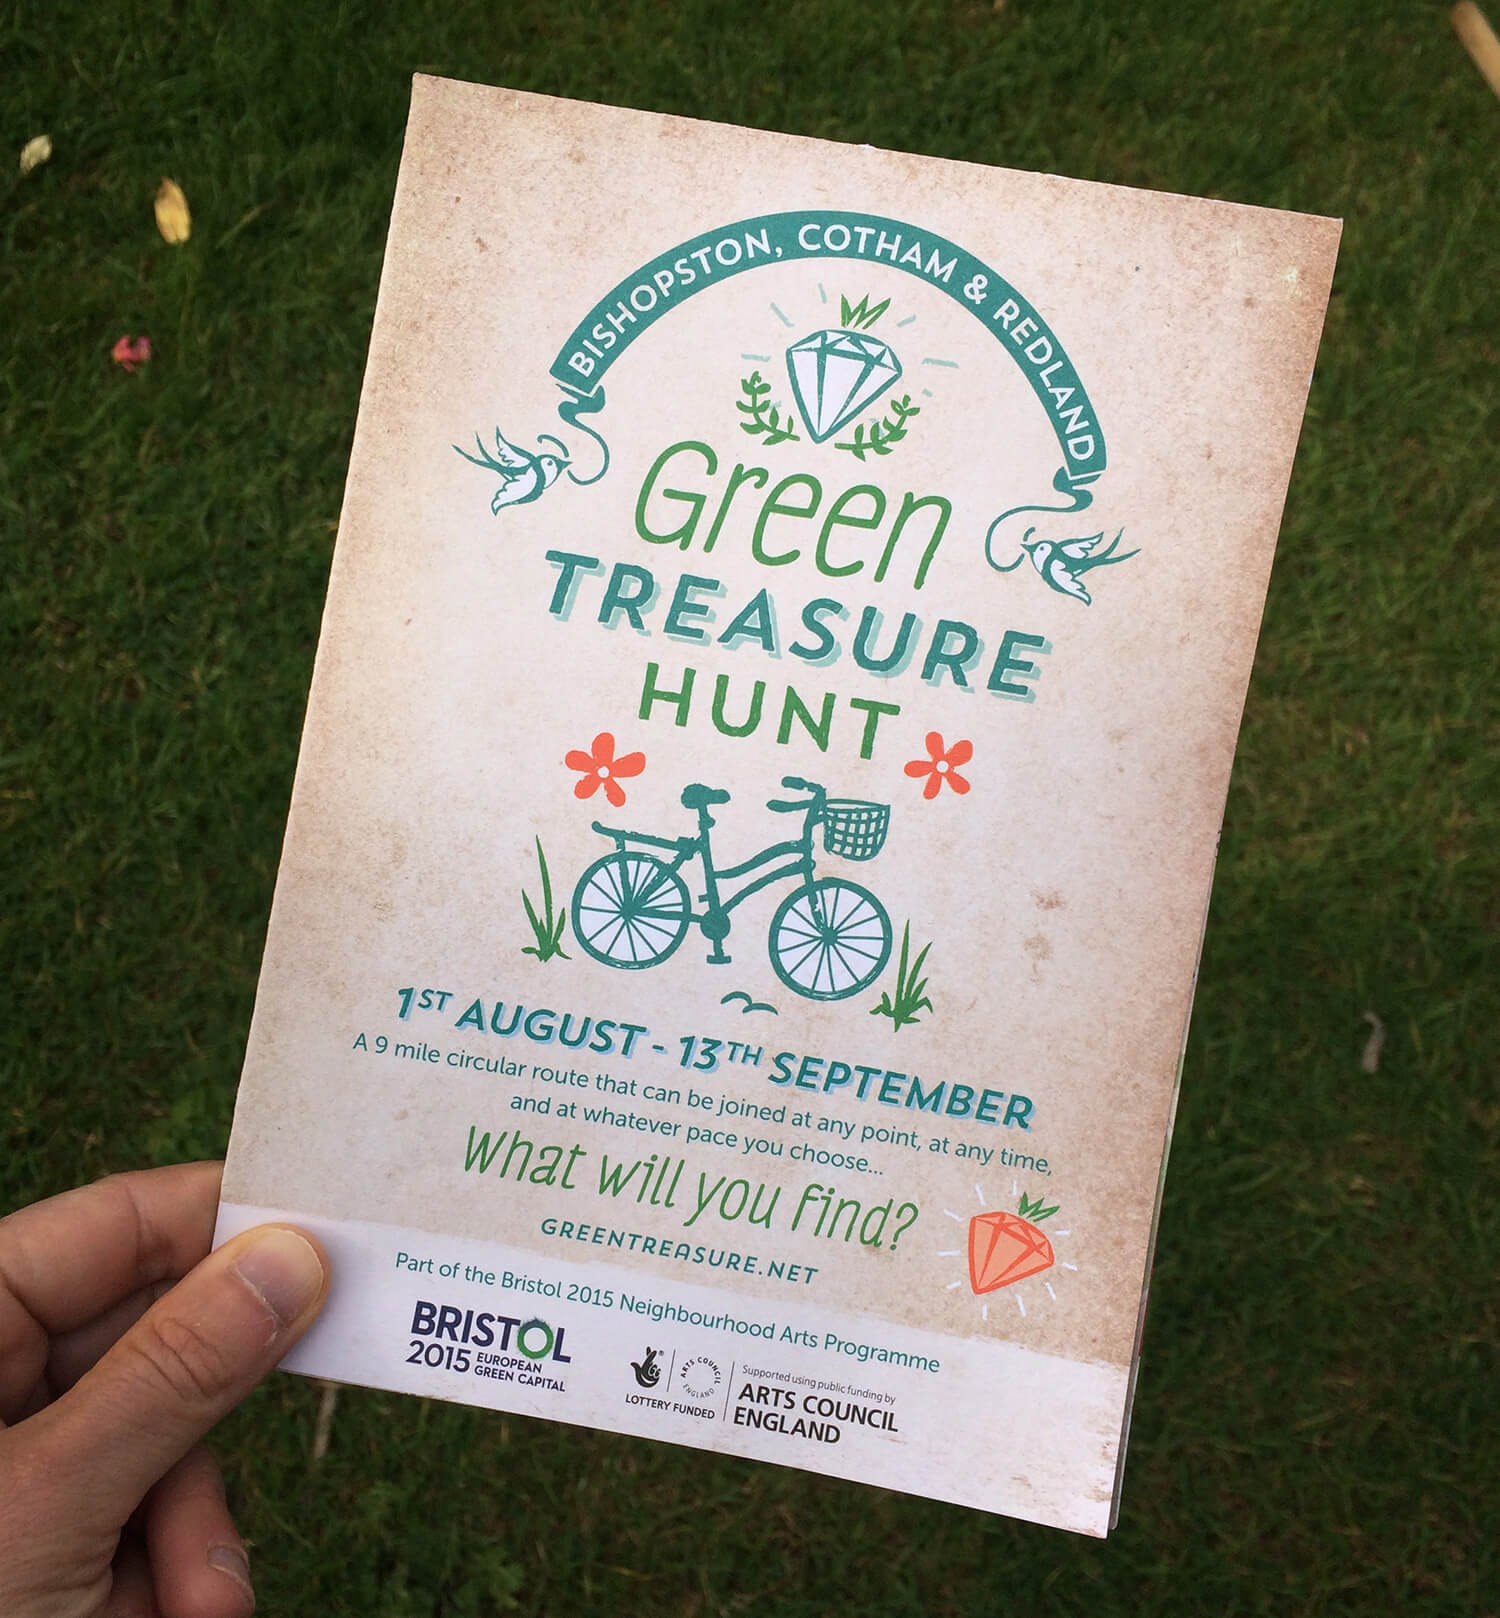 Green Treasure Hunt - Map/Leaflet